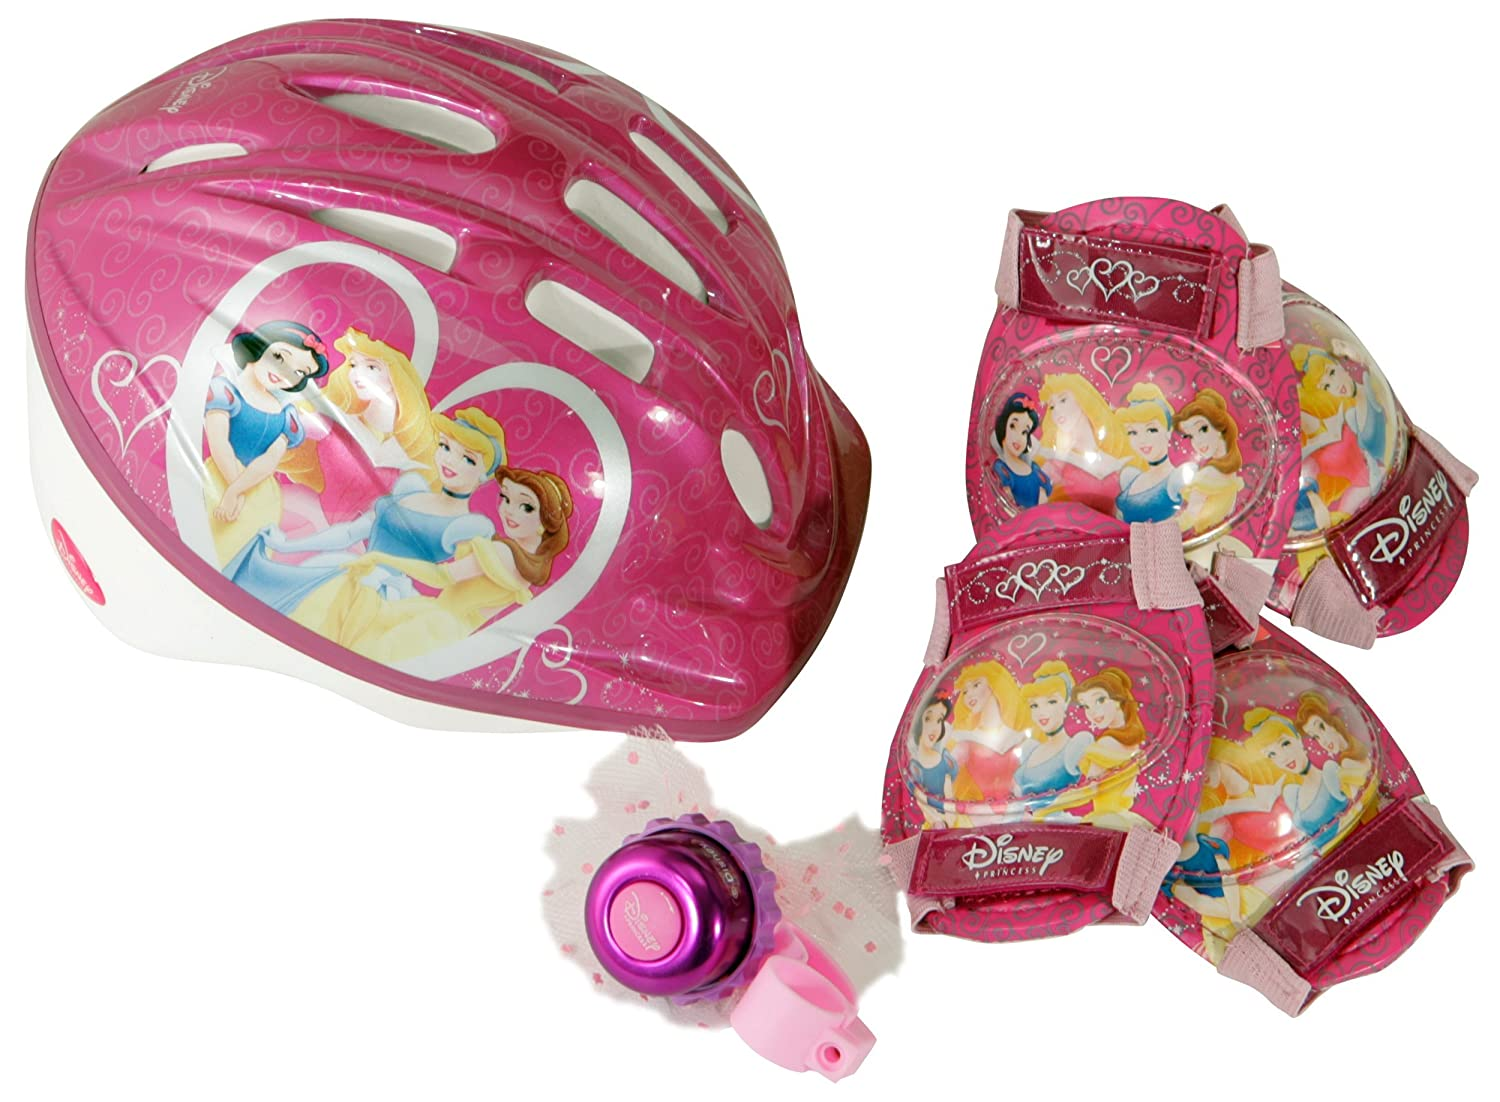 Disney Princess Micro Bicycle Helmet and Protective Pad Value Pack (Child)